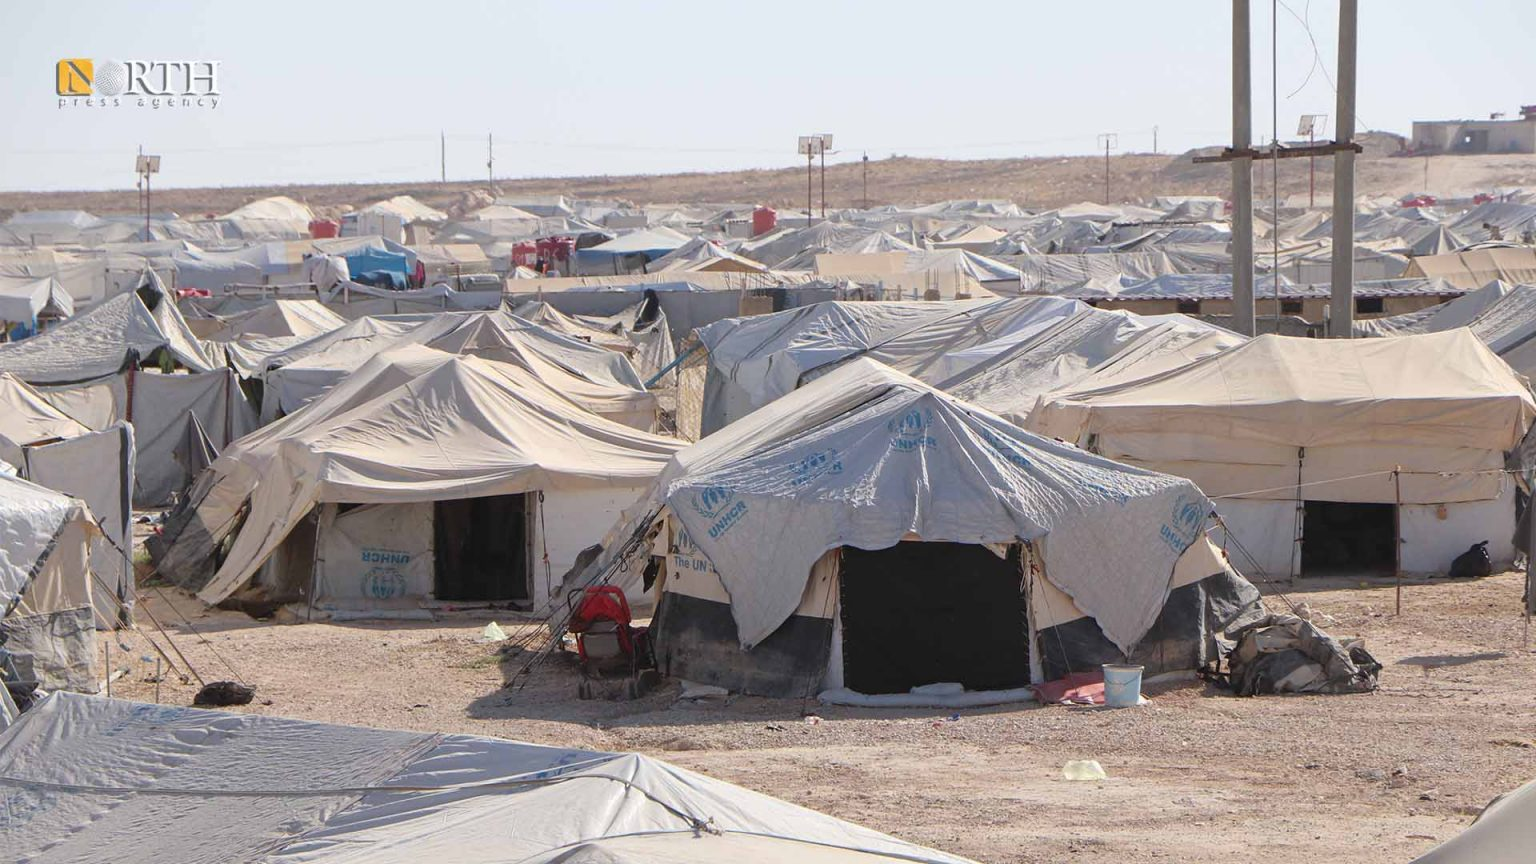 NGO Suspends Activities in al-Hol Camp After Armed Attack